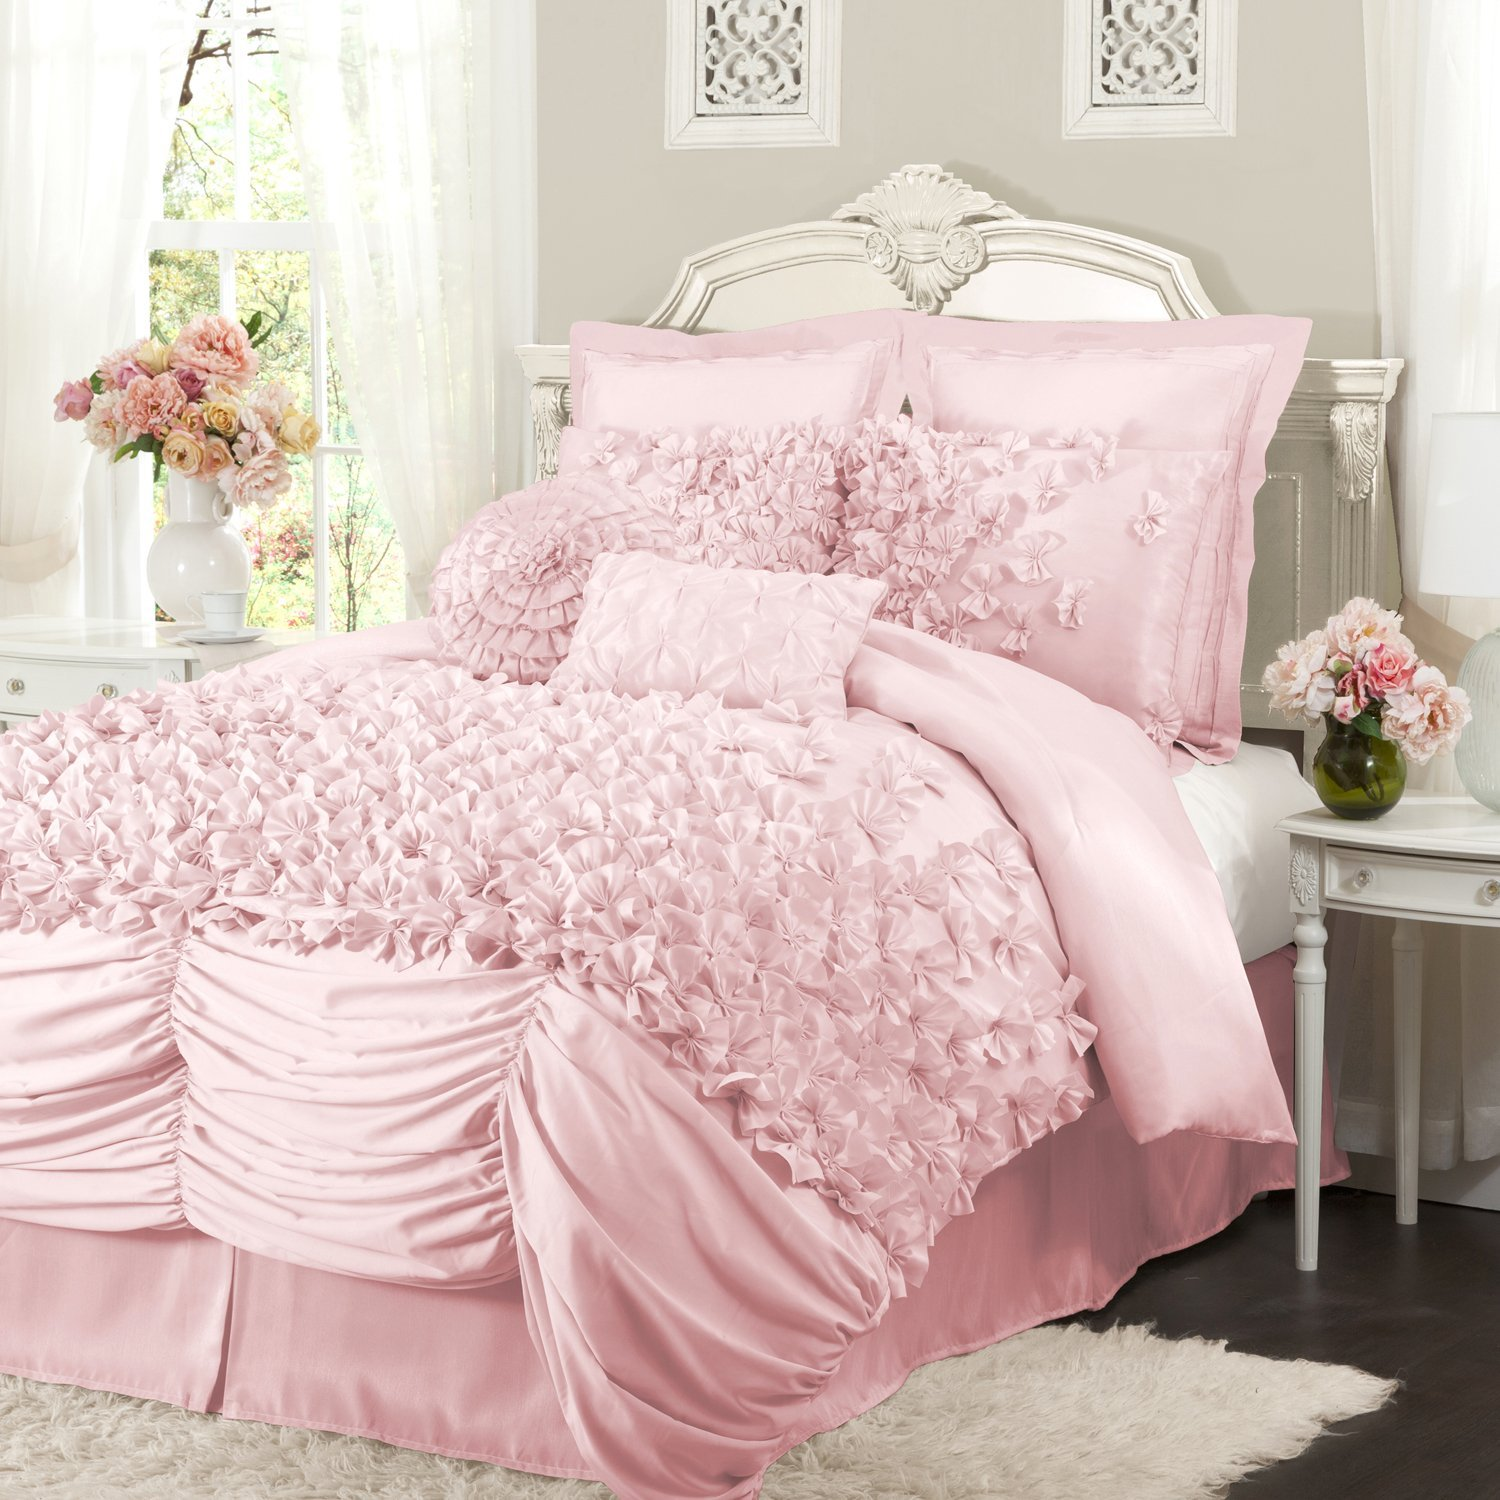 pale pink comforter bedding sets a soft place to fall. Black Bedroom Furniture Sets. Home Design Ideas